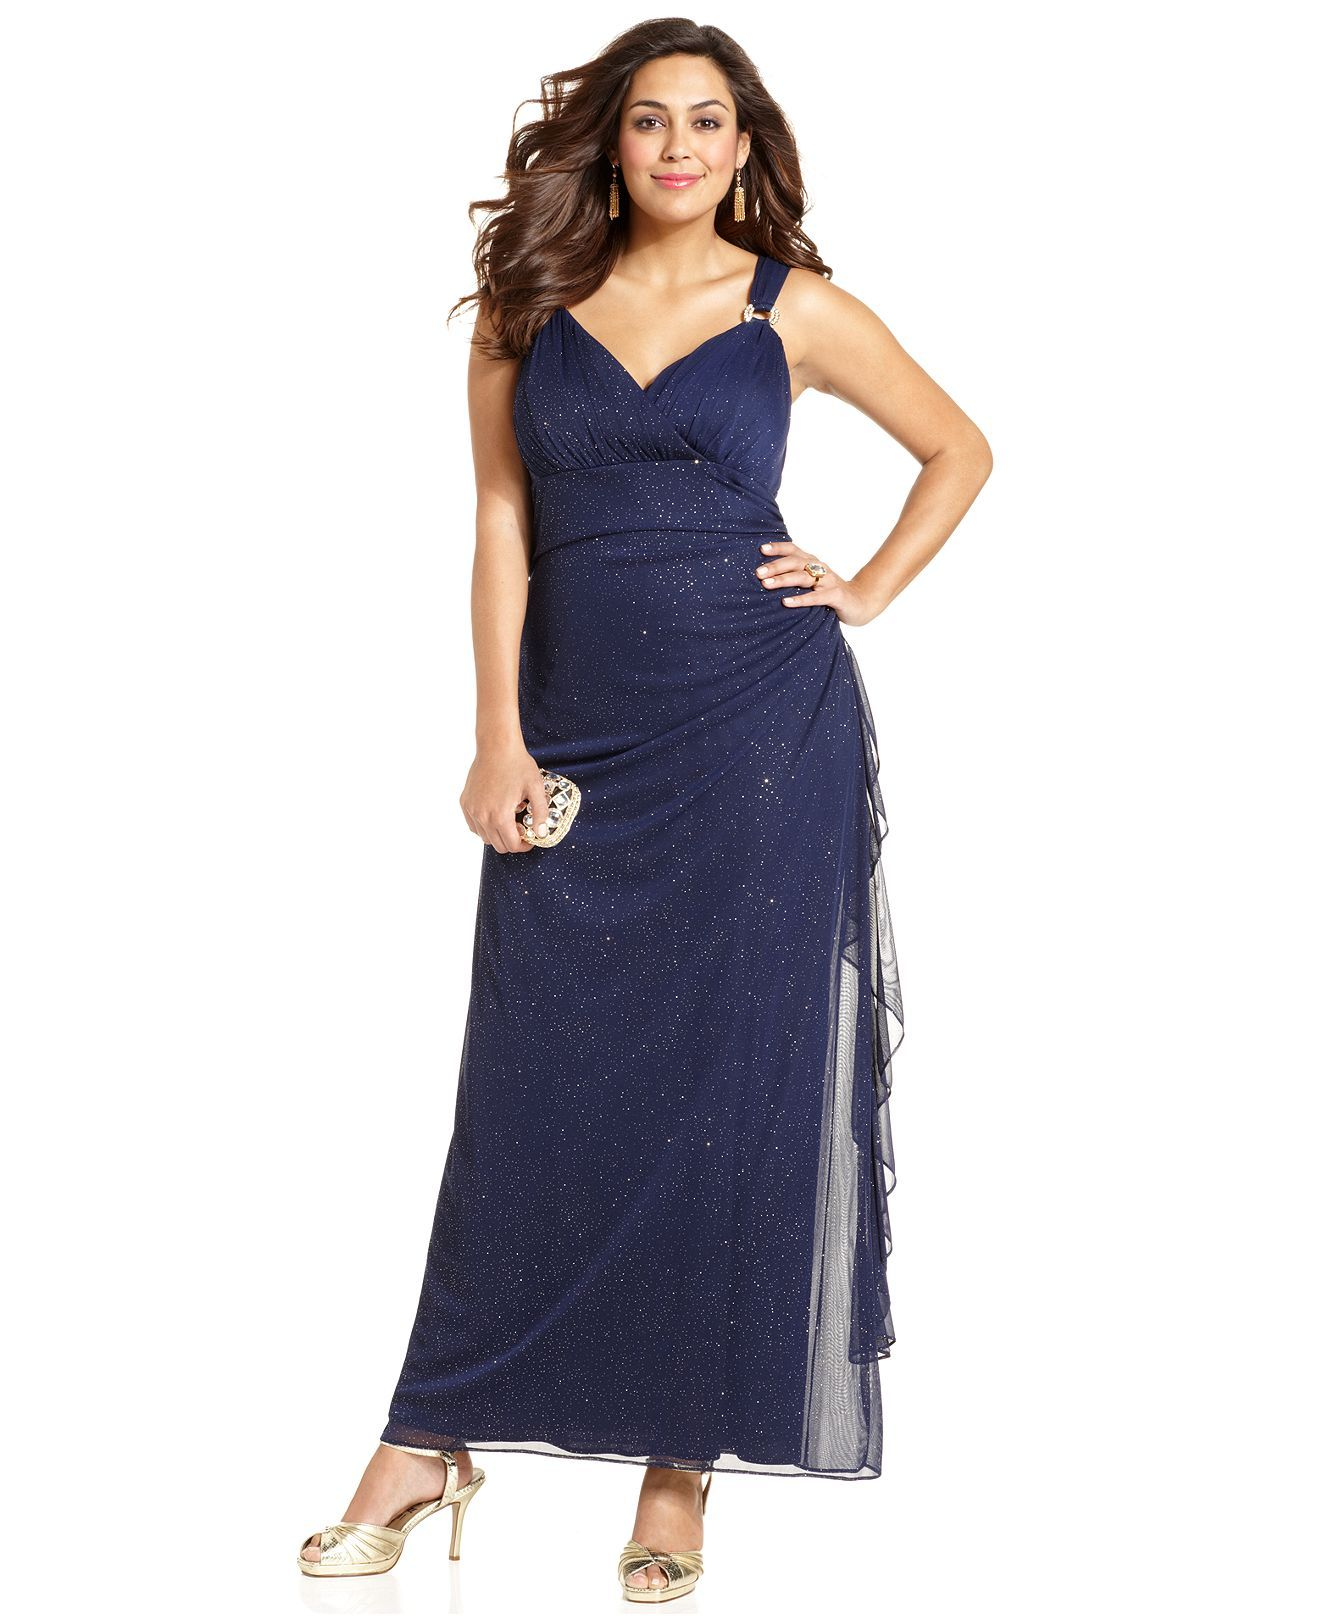 Betsy & Adam Plus Size Dress, Sleeveless Shimmer Gown ...